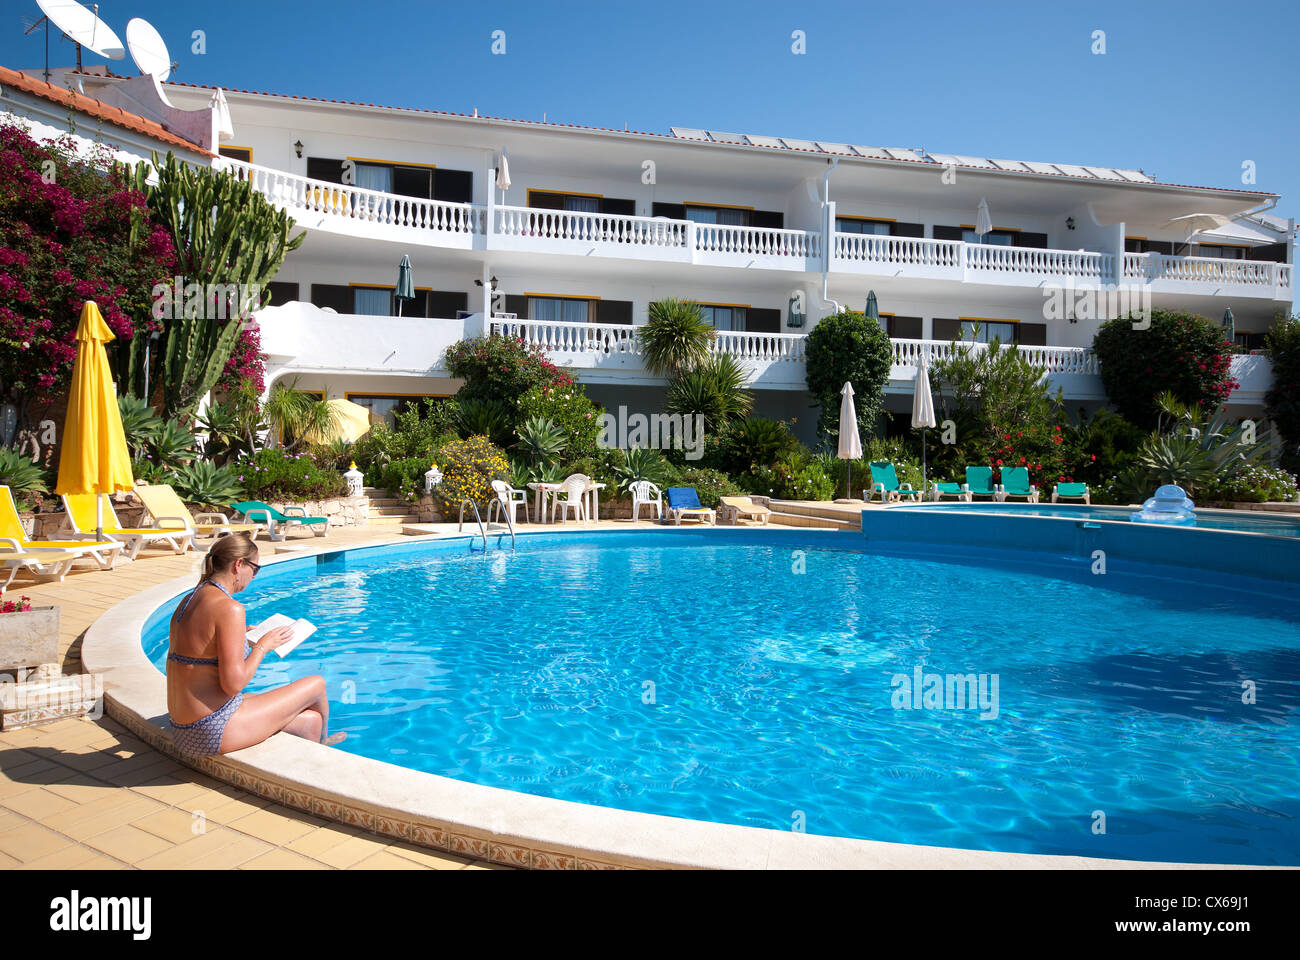 Along a pool stock photos along a pool stock images alamy for Ramsey swimming pool isle of man